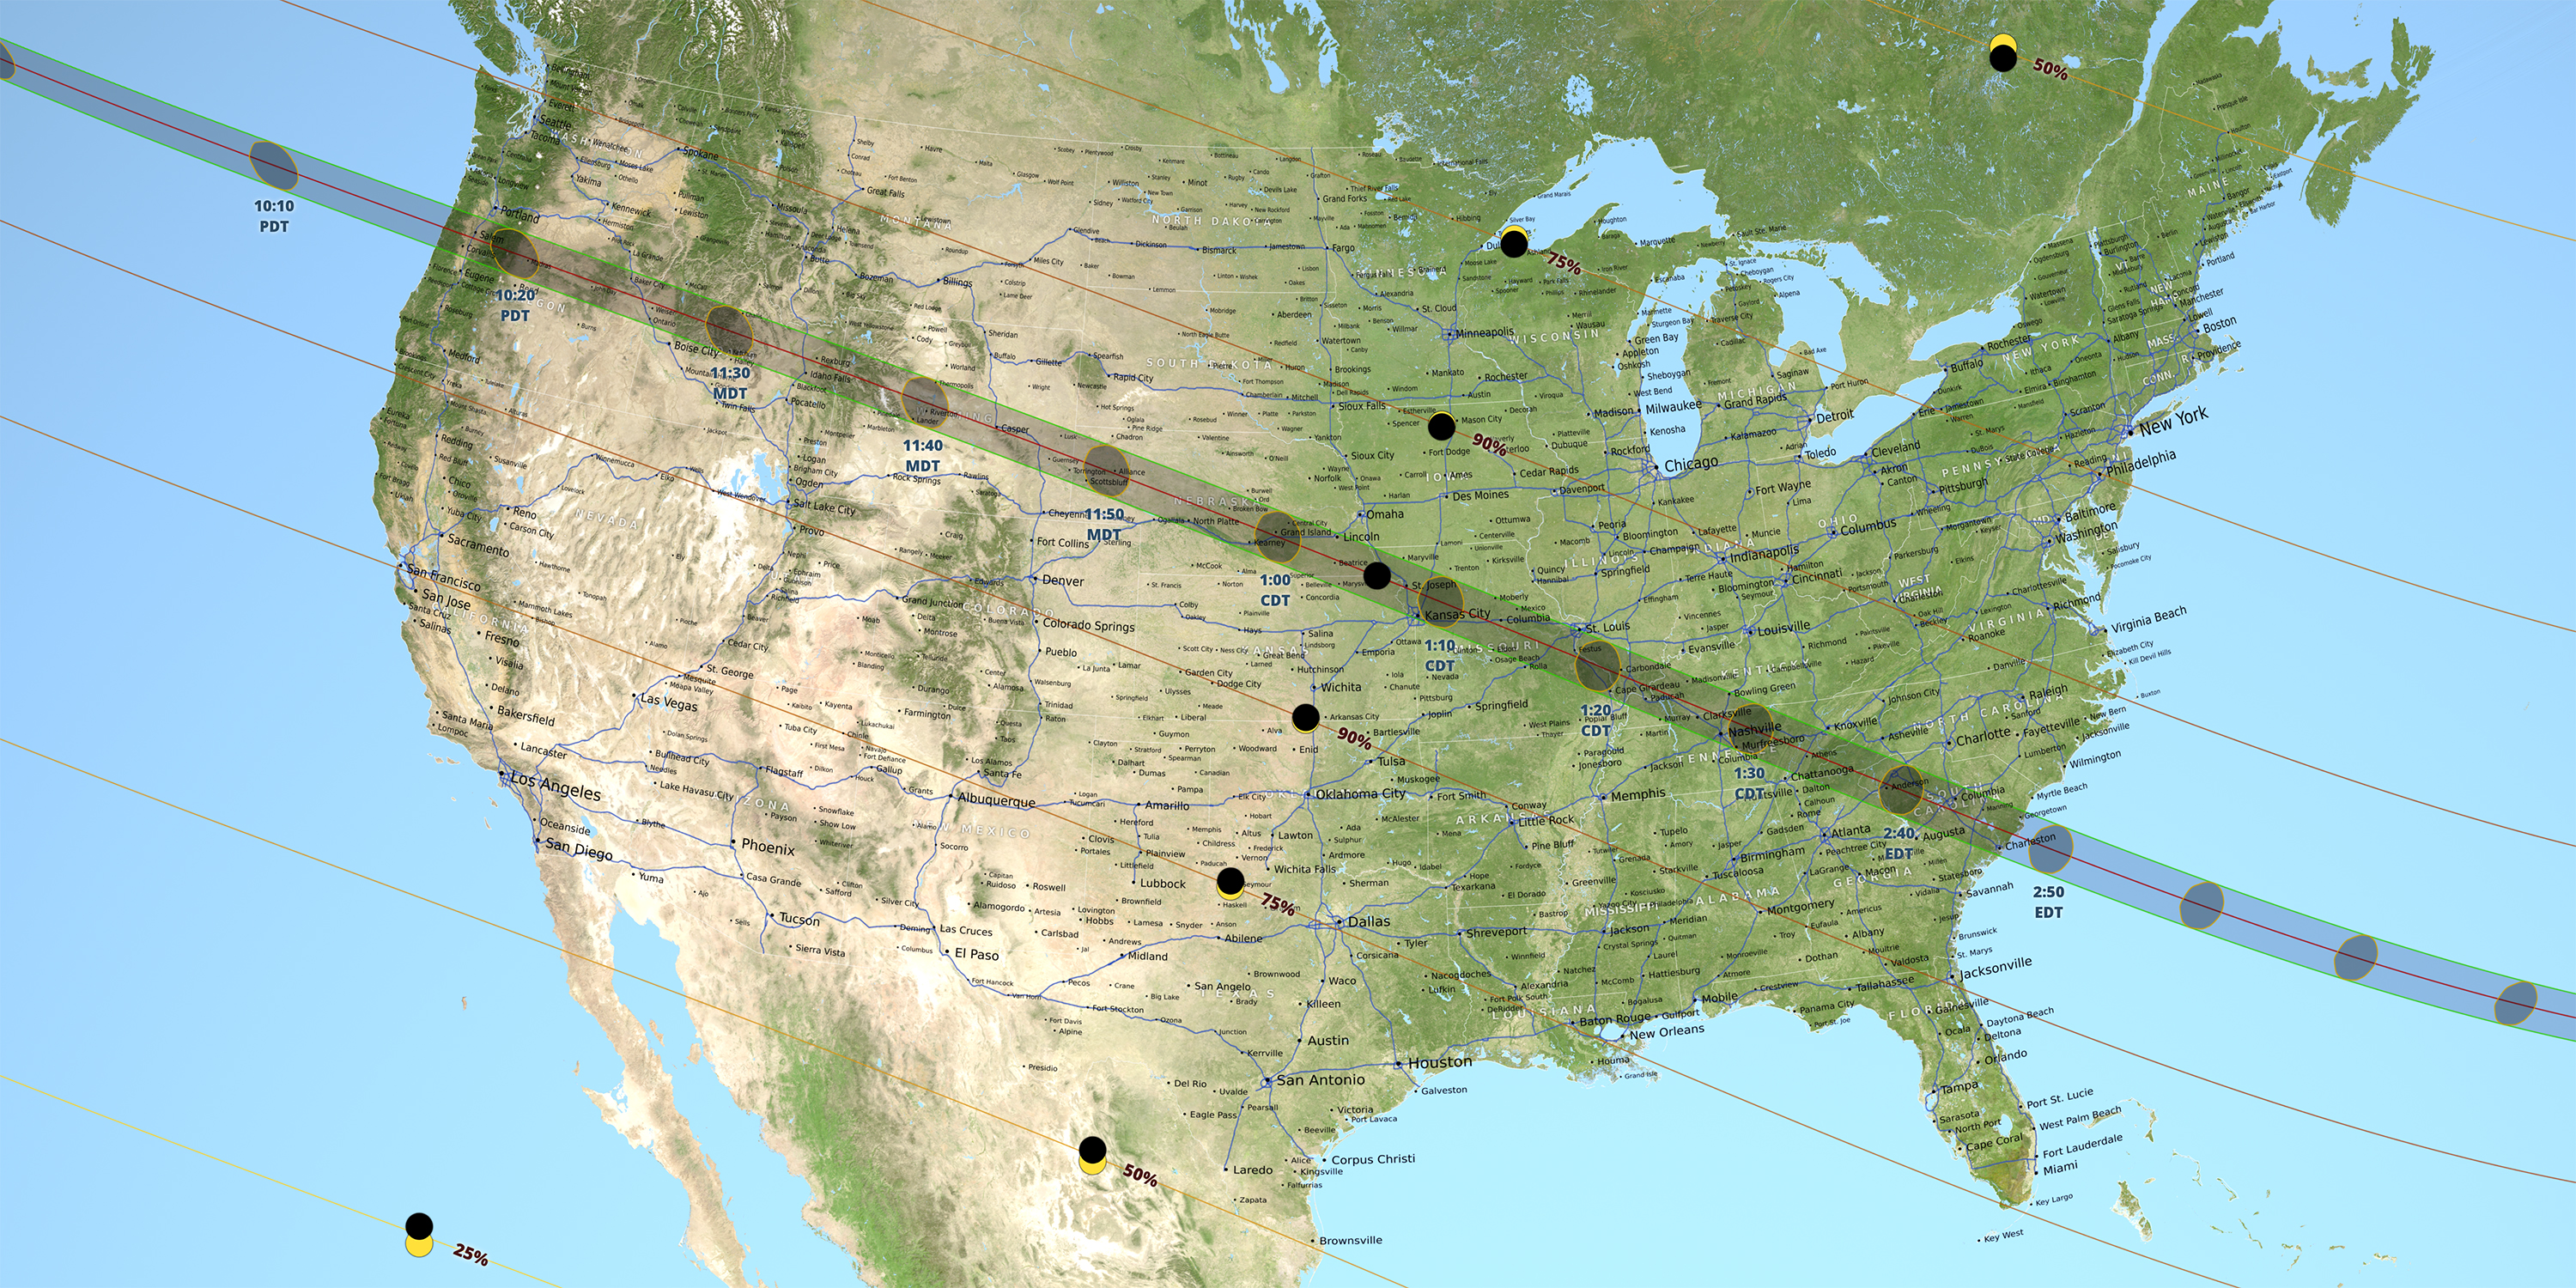 Moon Data Provides More Accurate Eclipse Path NASA - Map of i 40 across us